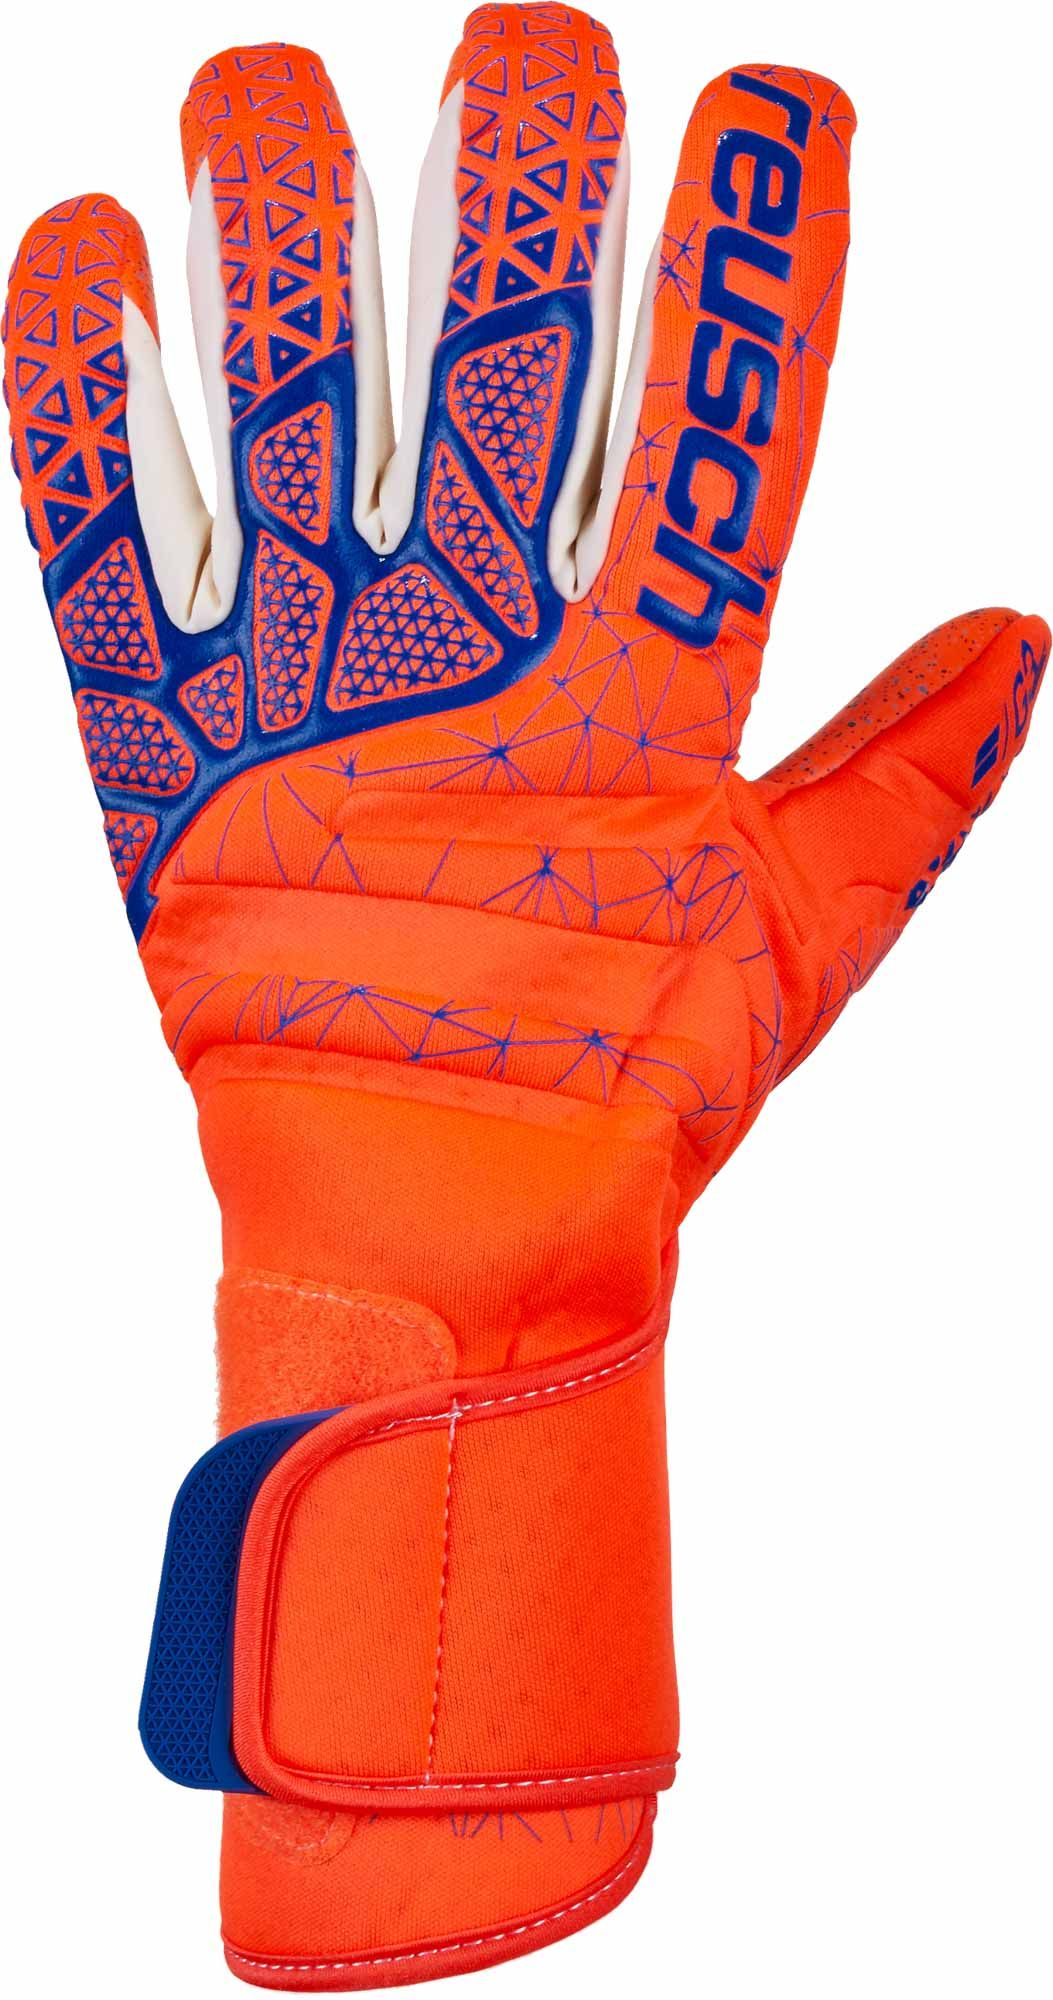 c4de91a64c Reusch Pure Contact G3 Fusion Gloves. Buy yours from www.soccerpro.com